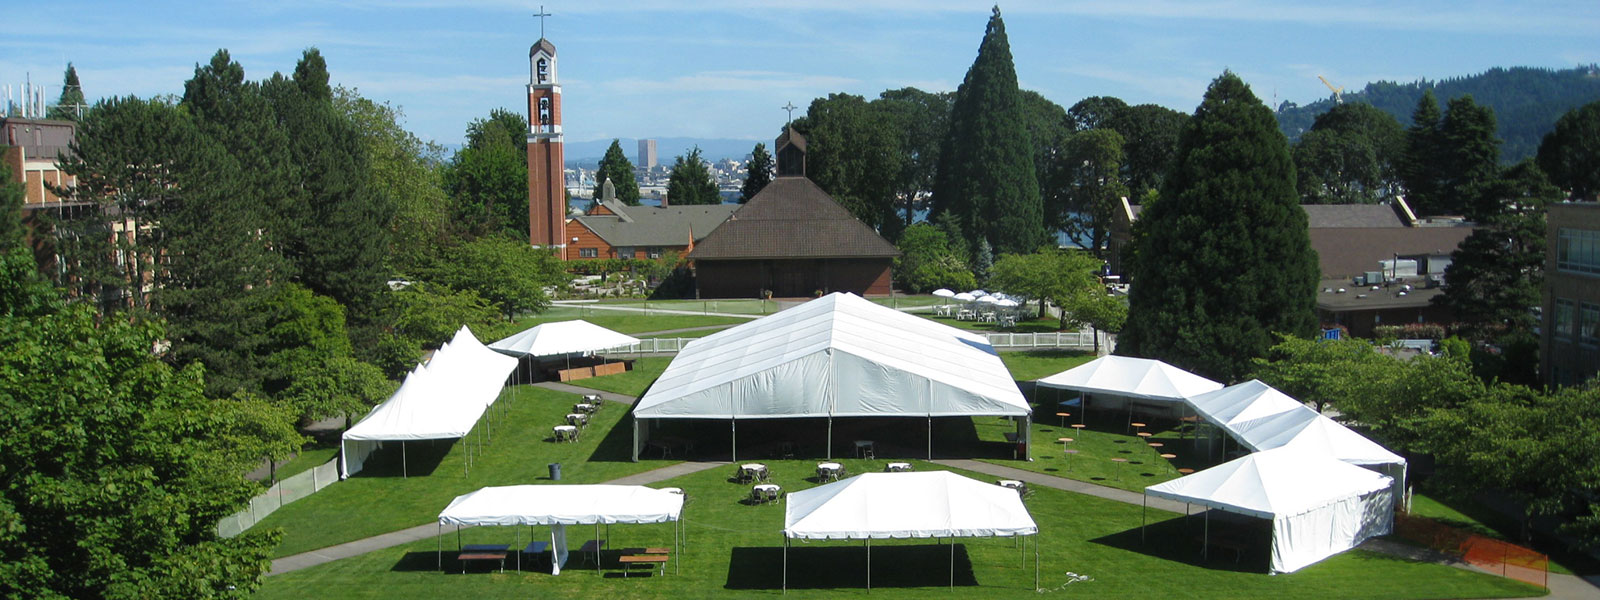 Party Rentals In Portland OR | Event Rental And Party Supply Headquarters  In Portland Vancouver Metro Area